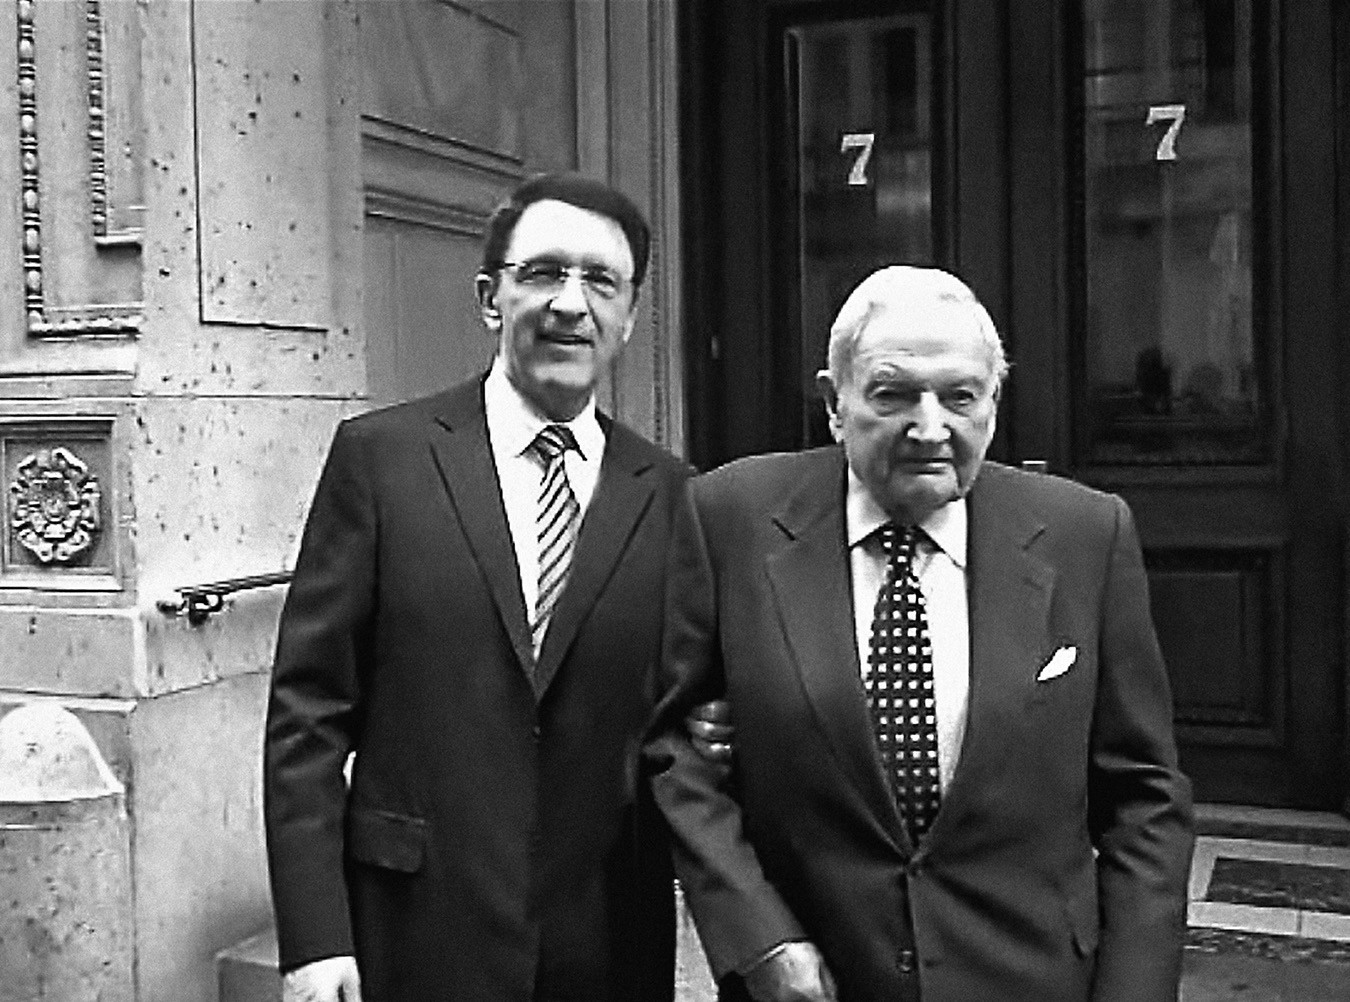 Sandy with his invaluable mentor and friend David Rockefeller. The two met through the White House Fellows program, which Rockefeller helped found.